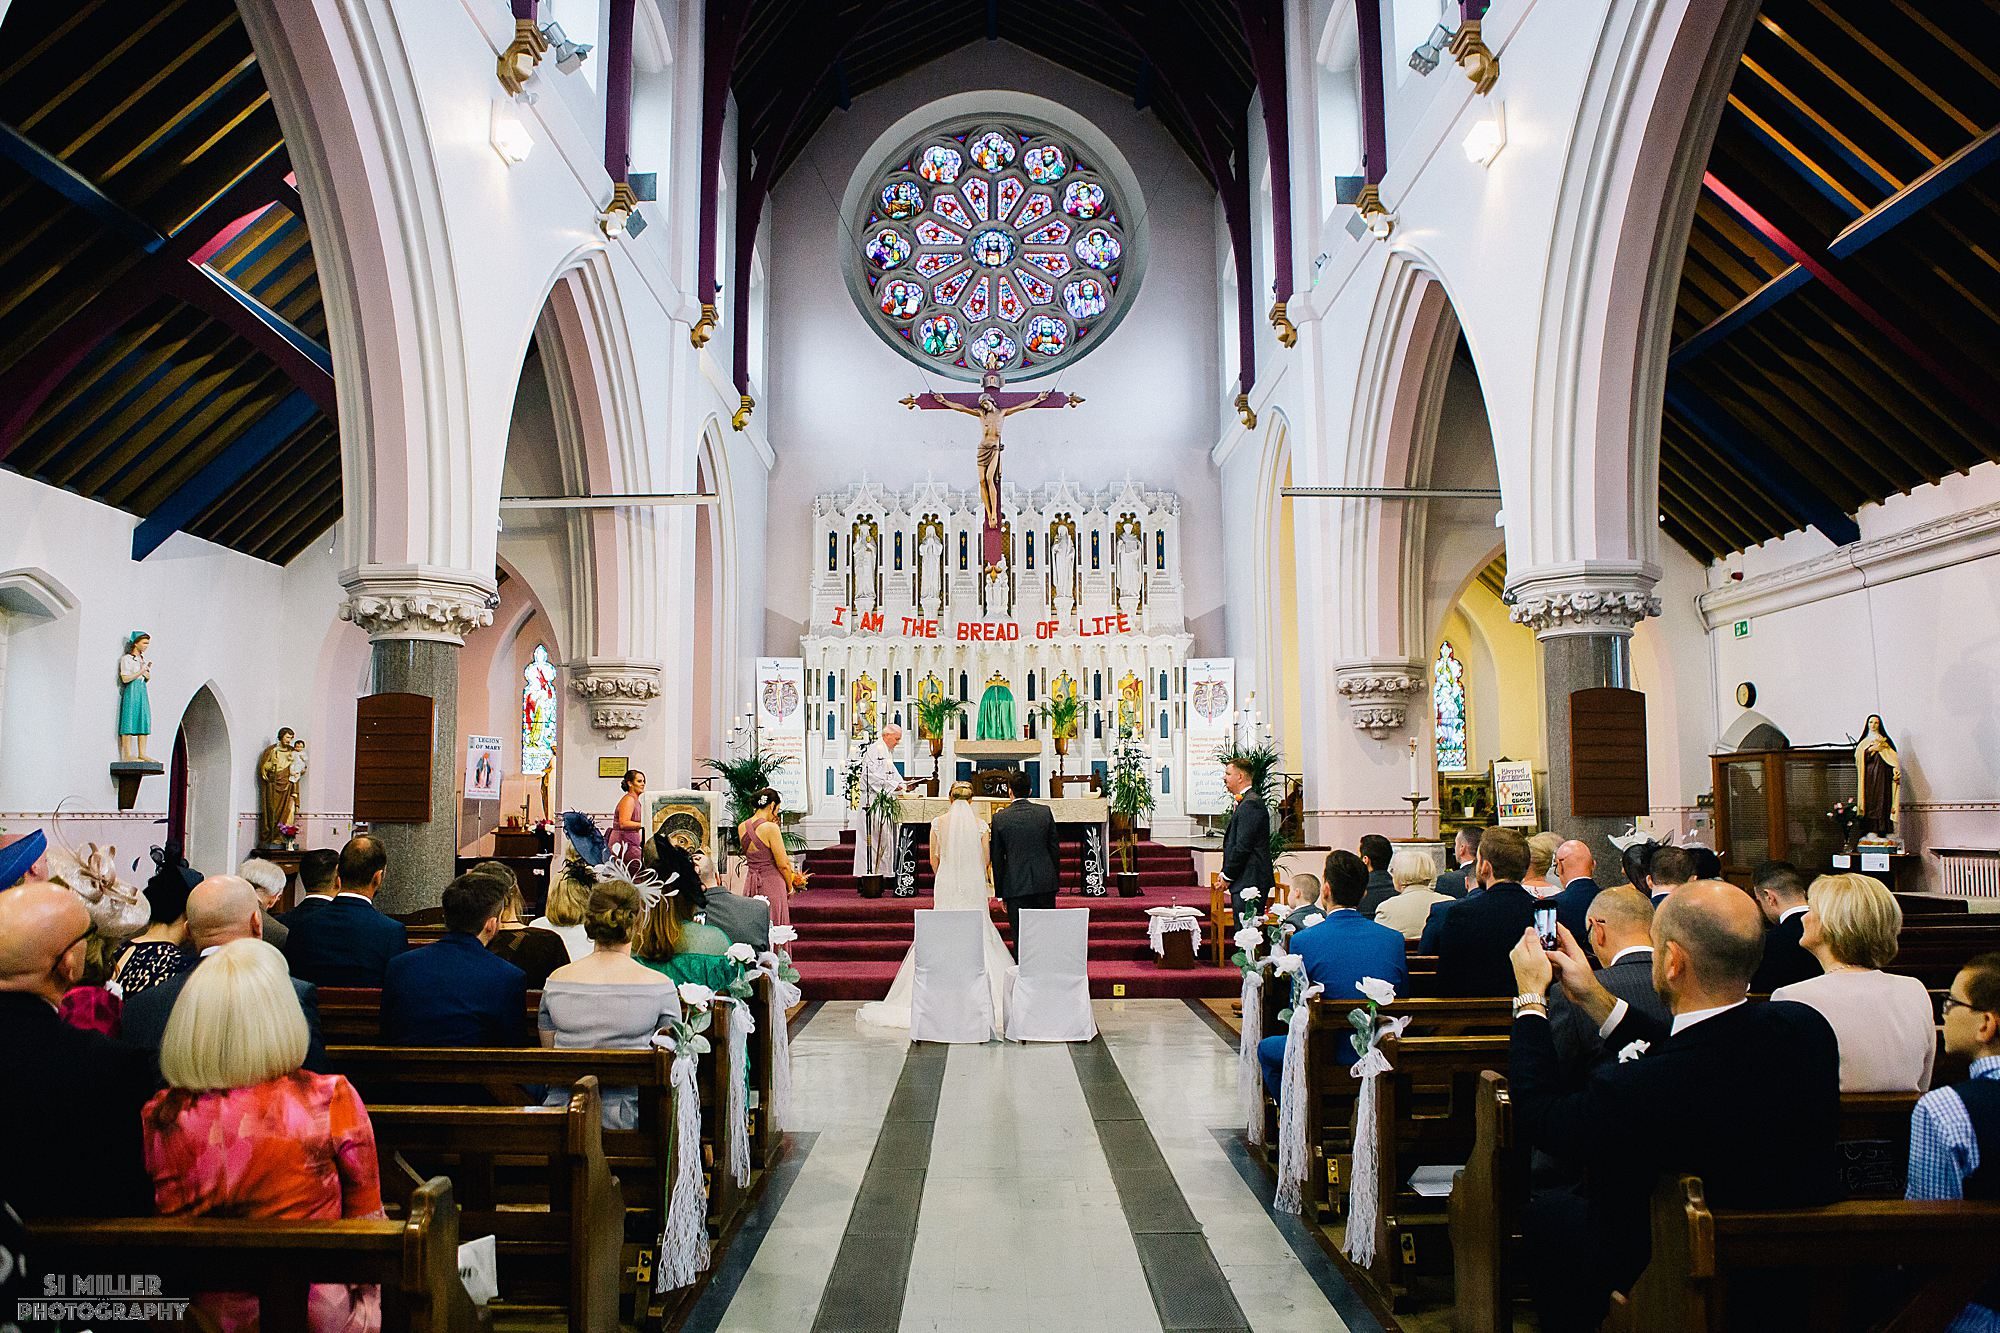 bride and groom at alter during wedding ceremony at Blessed Sacred Church Liverpool